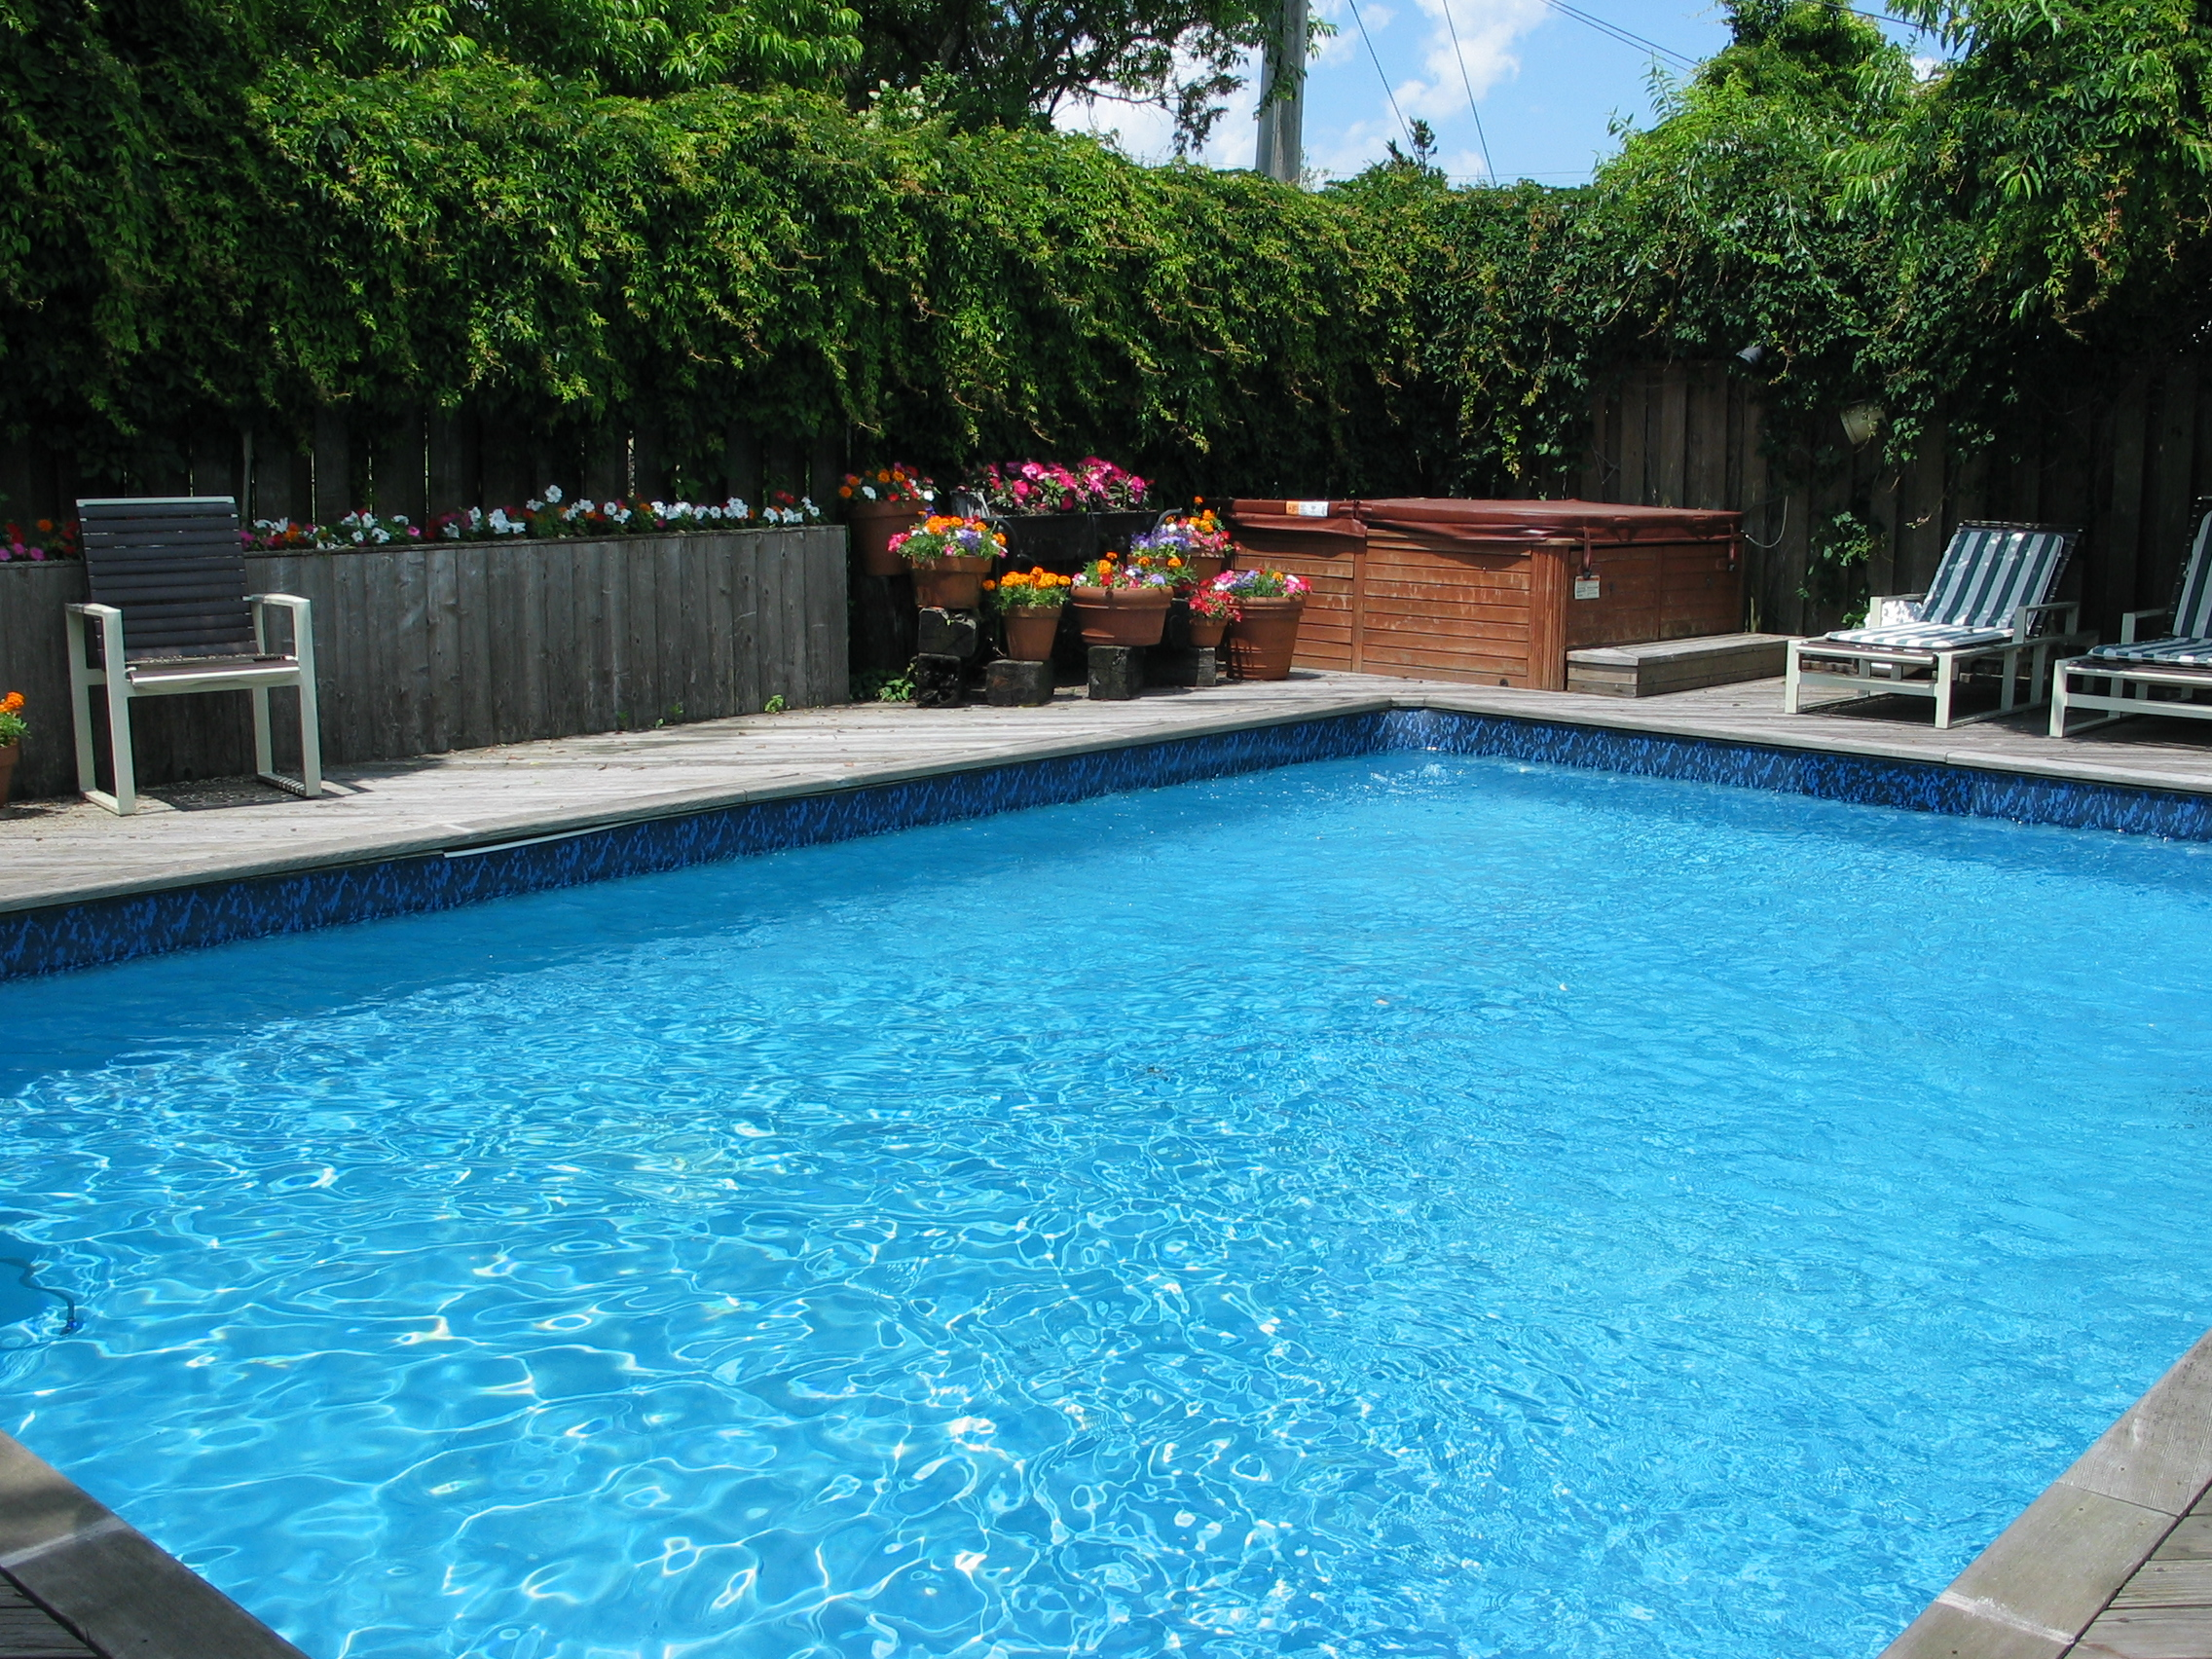 Best priced home with a pool in Seaview!  The main house features 3 bedrooms, 2 full bathrooms, updated kitchen, and spacious living and dining area.  Guest house with 2 bedrooms and 1 full bath.  Private fully fenced property.  Convenient to ferry, market, & lifeguards.